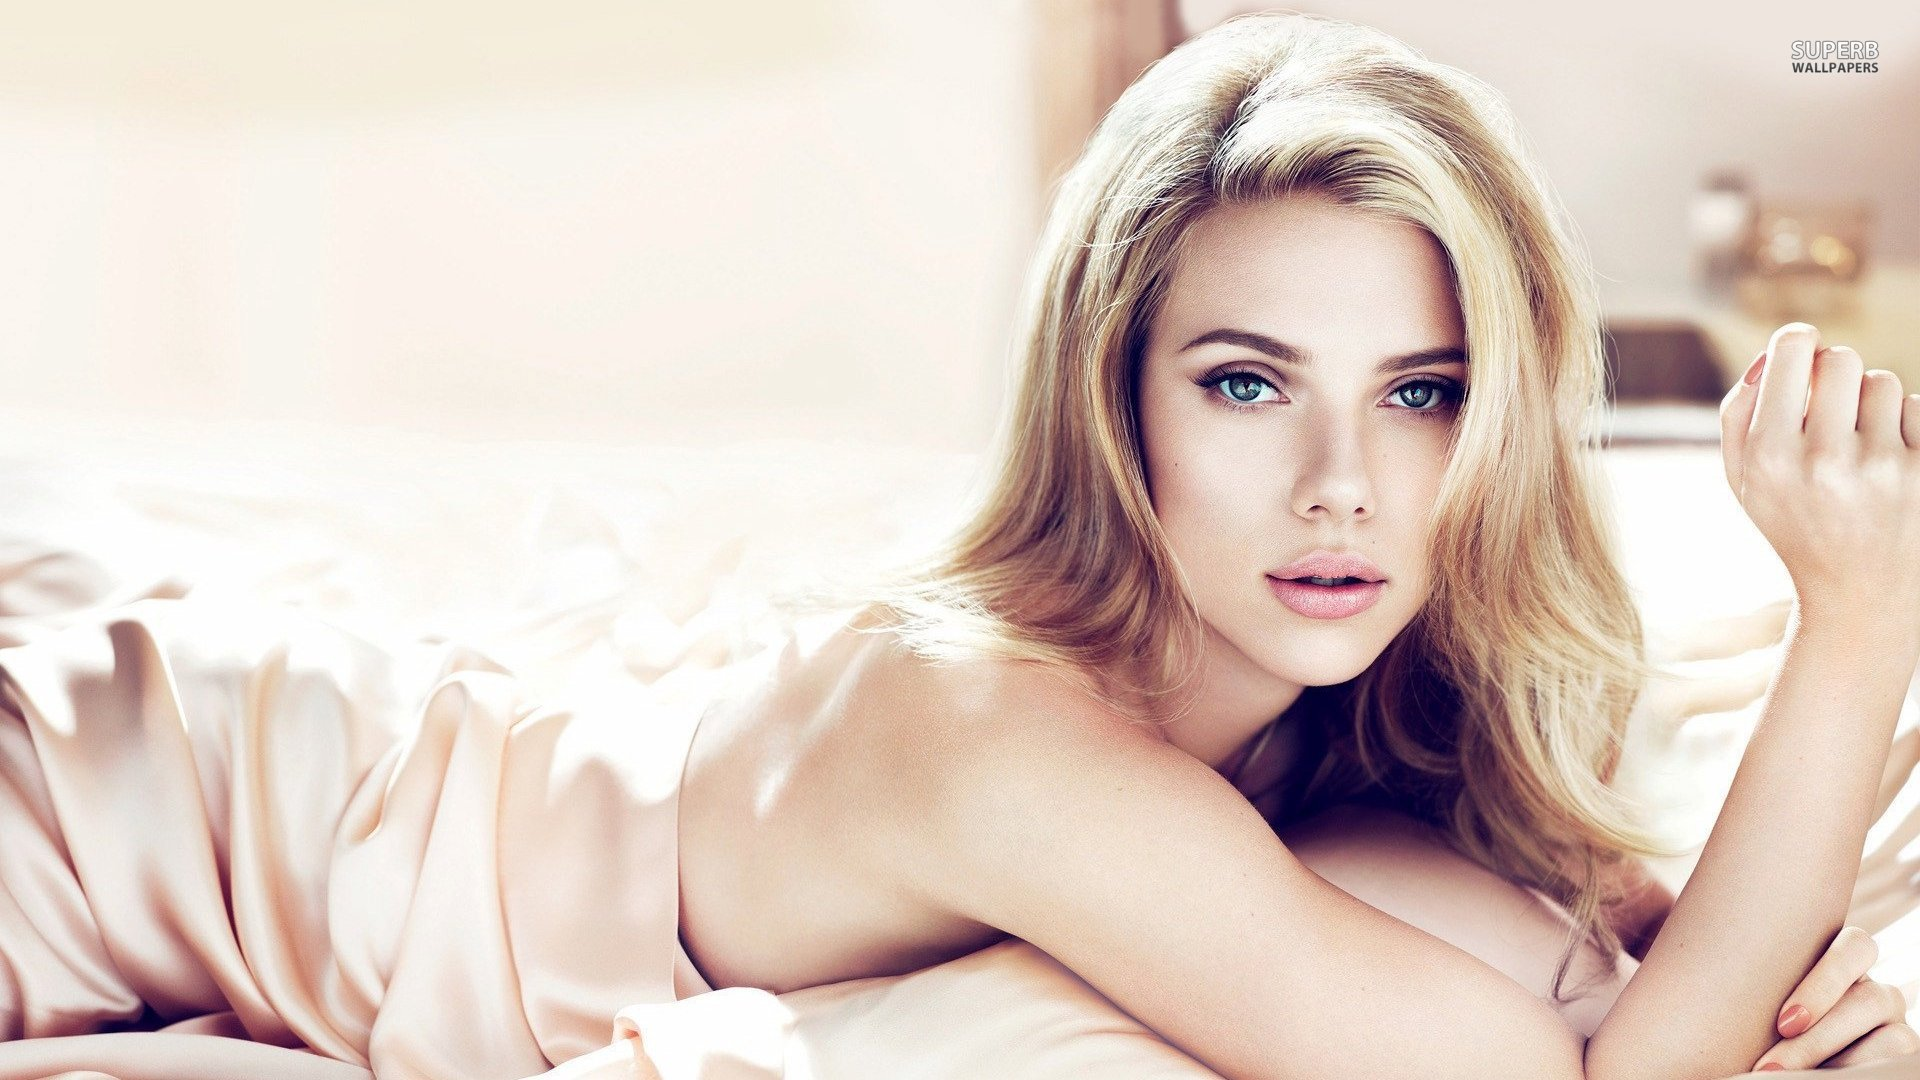 Scarlett Johansson Wallpapers High Resolution And Quality